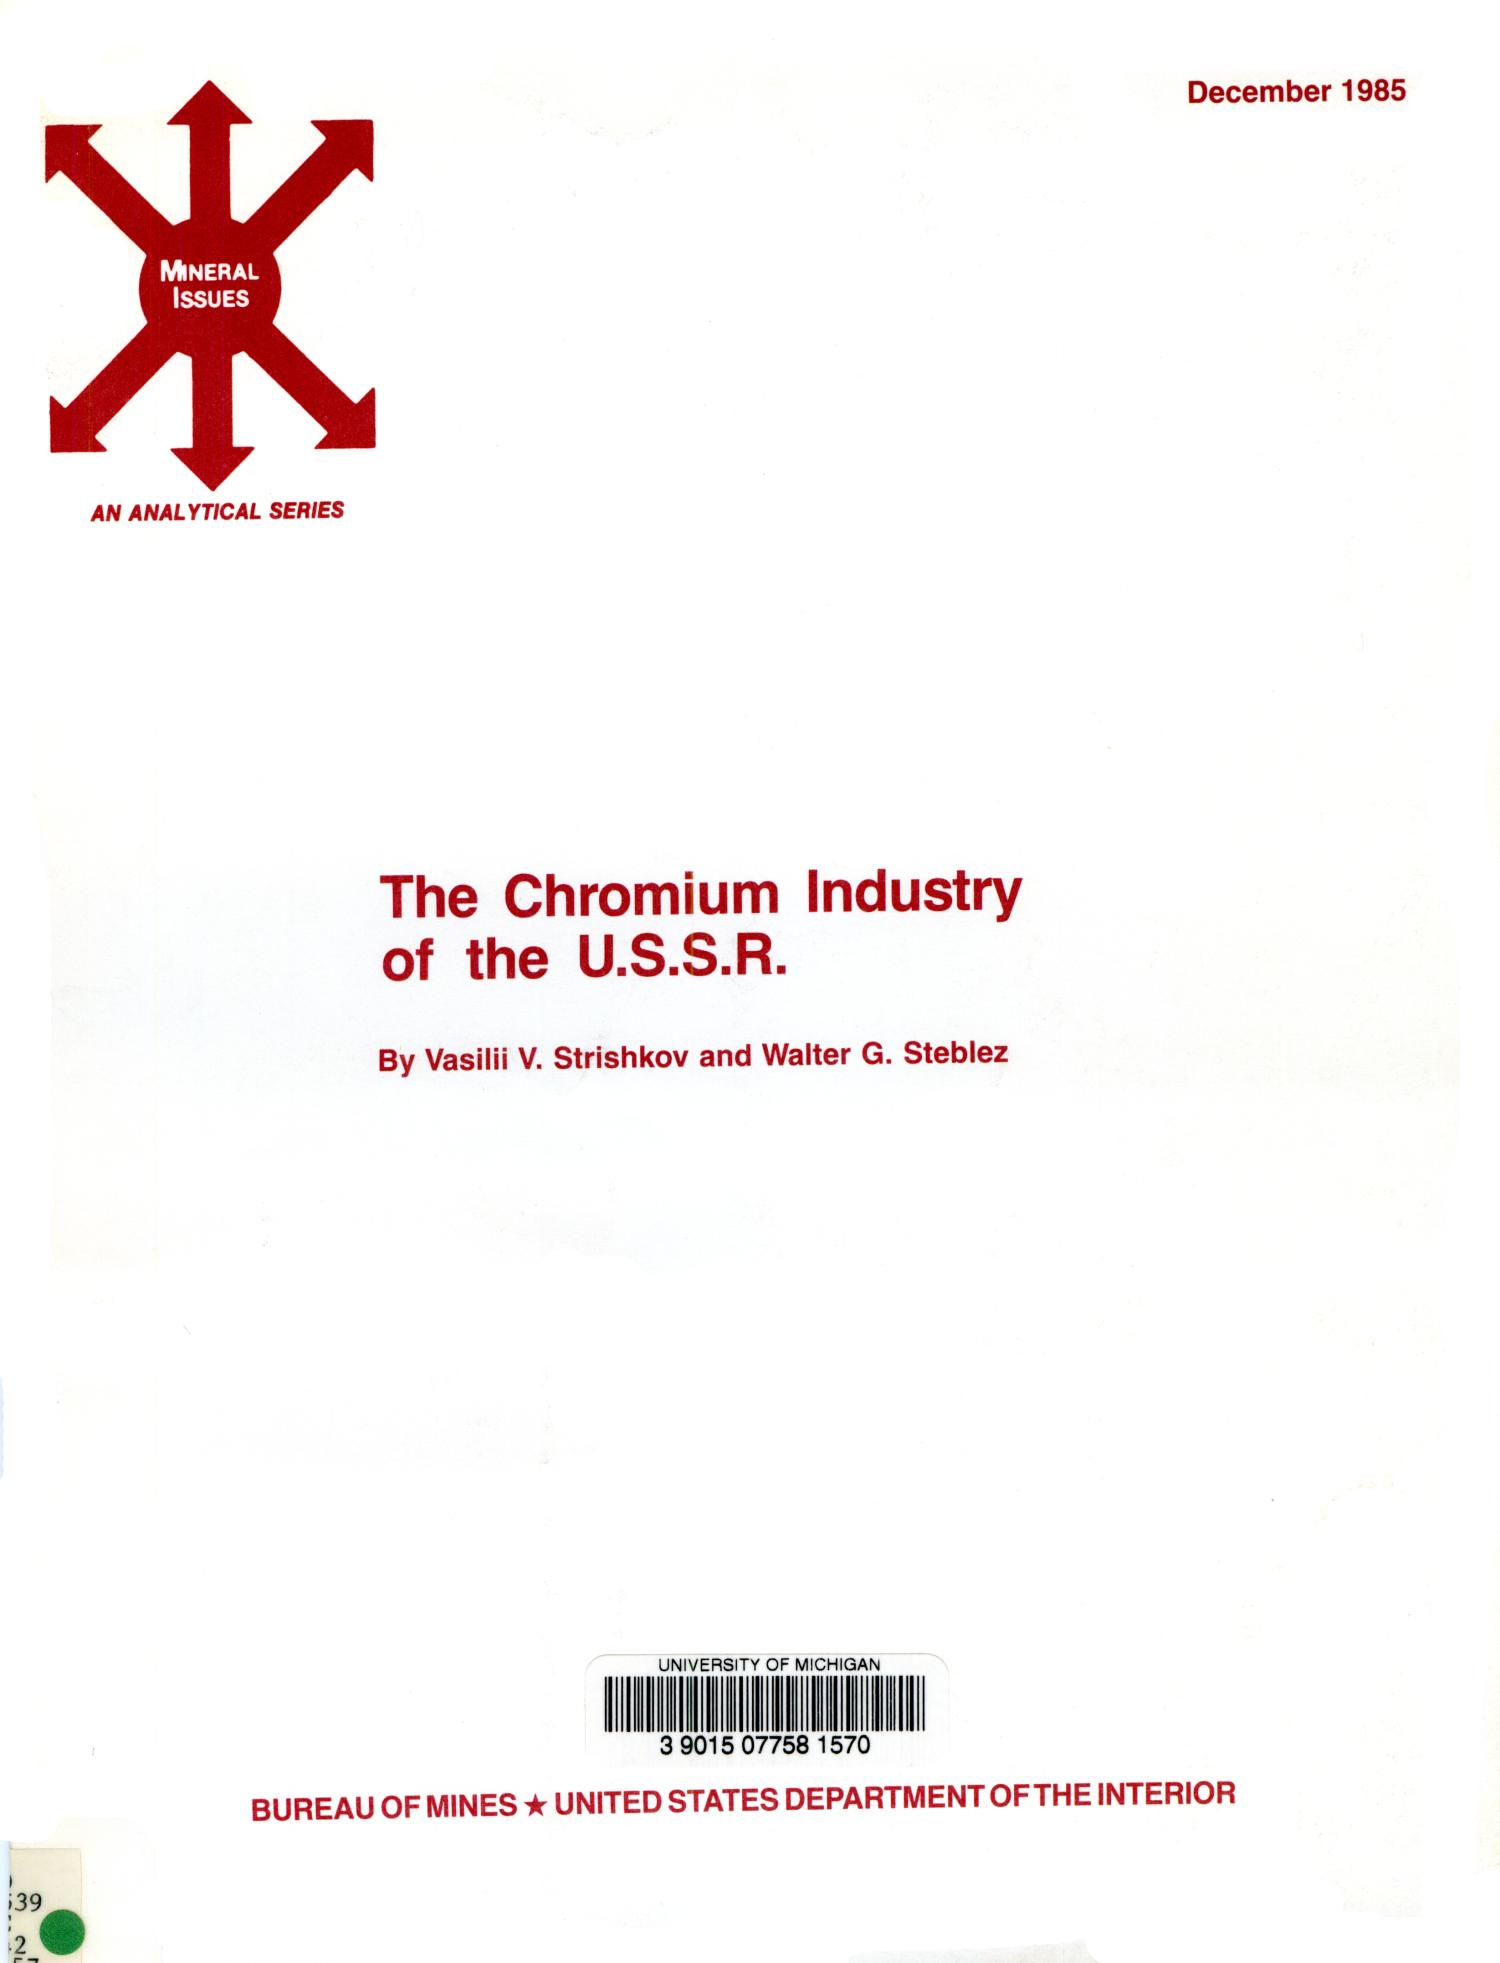 The Chromium Industry of the U.S.S.R.                                                                                                      Front Cover